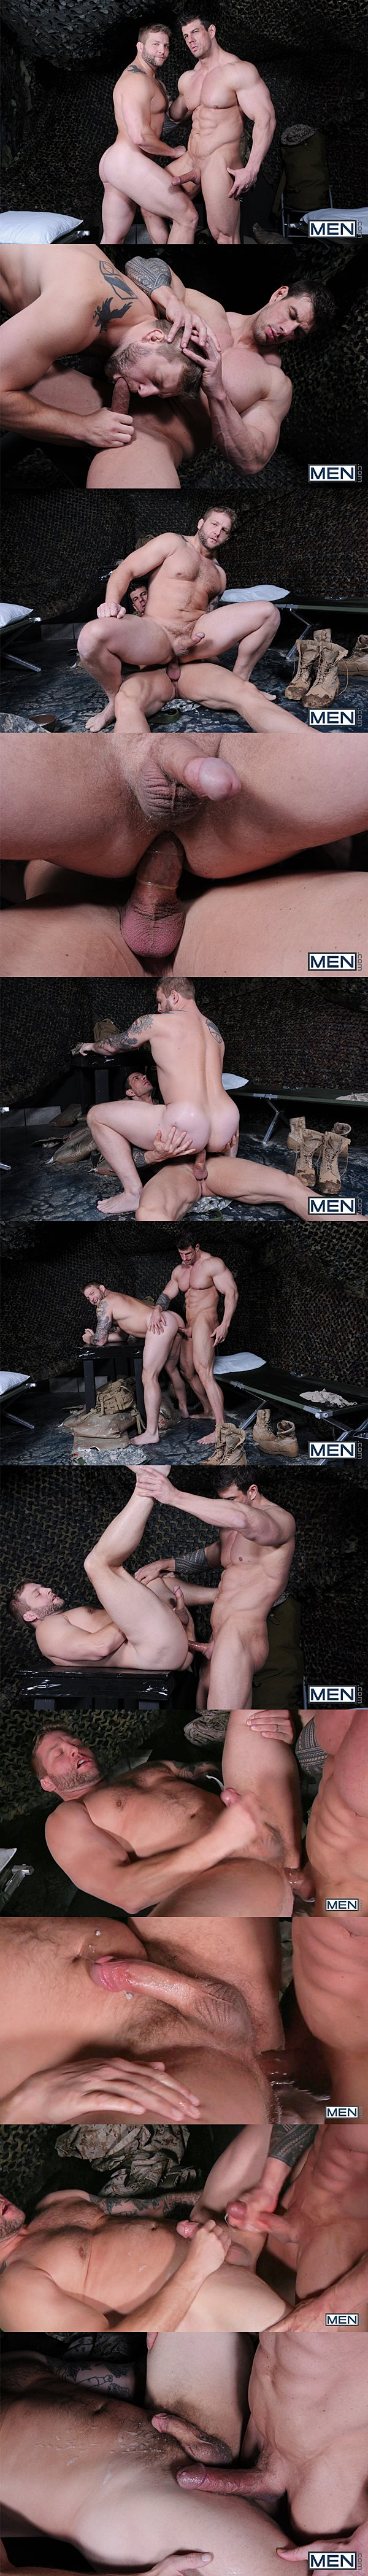 Handsome muscle god Zeb Atlas fucks a big load out of Colby Jansen Tour Of Duty Part 1 at Drillmyhole 02